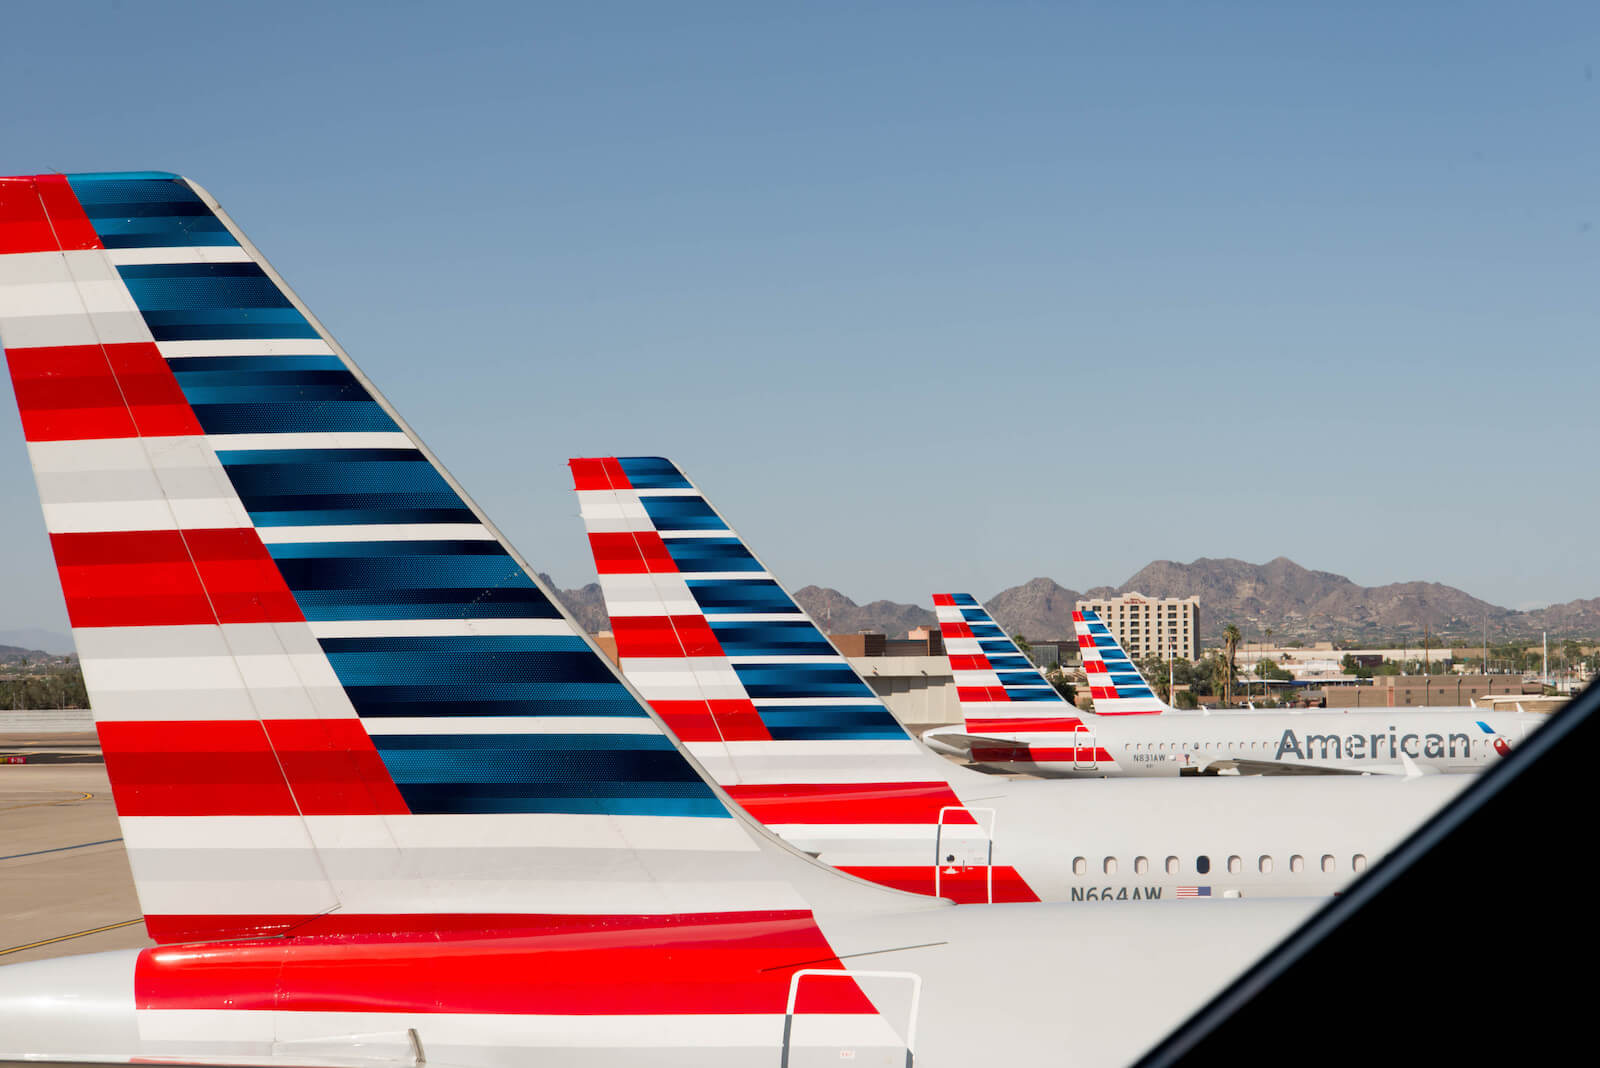 New 70,000-mile bonus with the CitiBusiness American Airlines Card